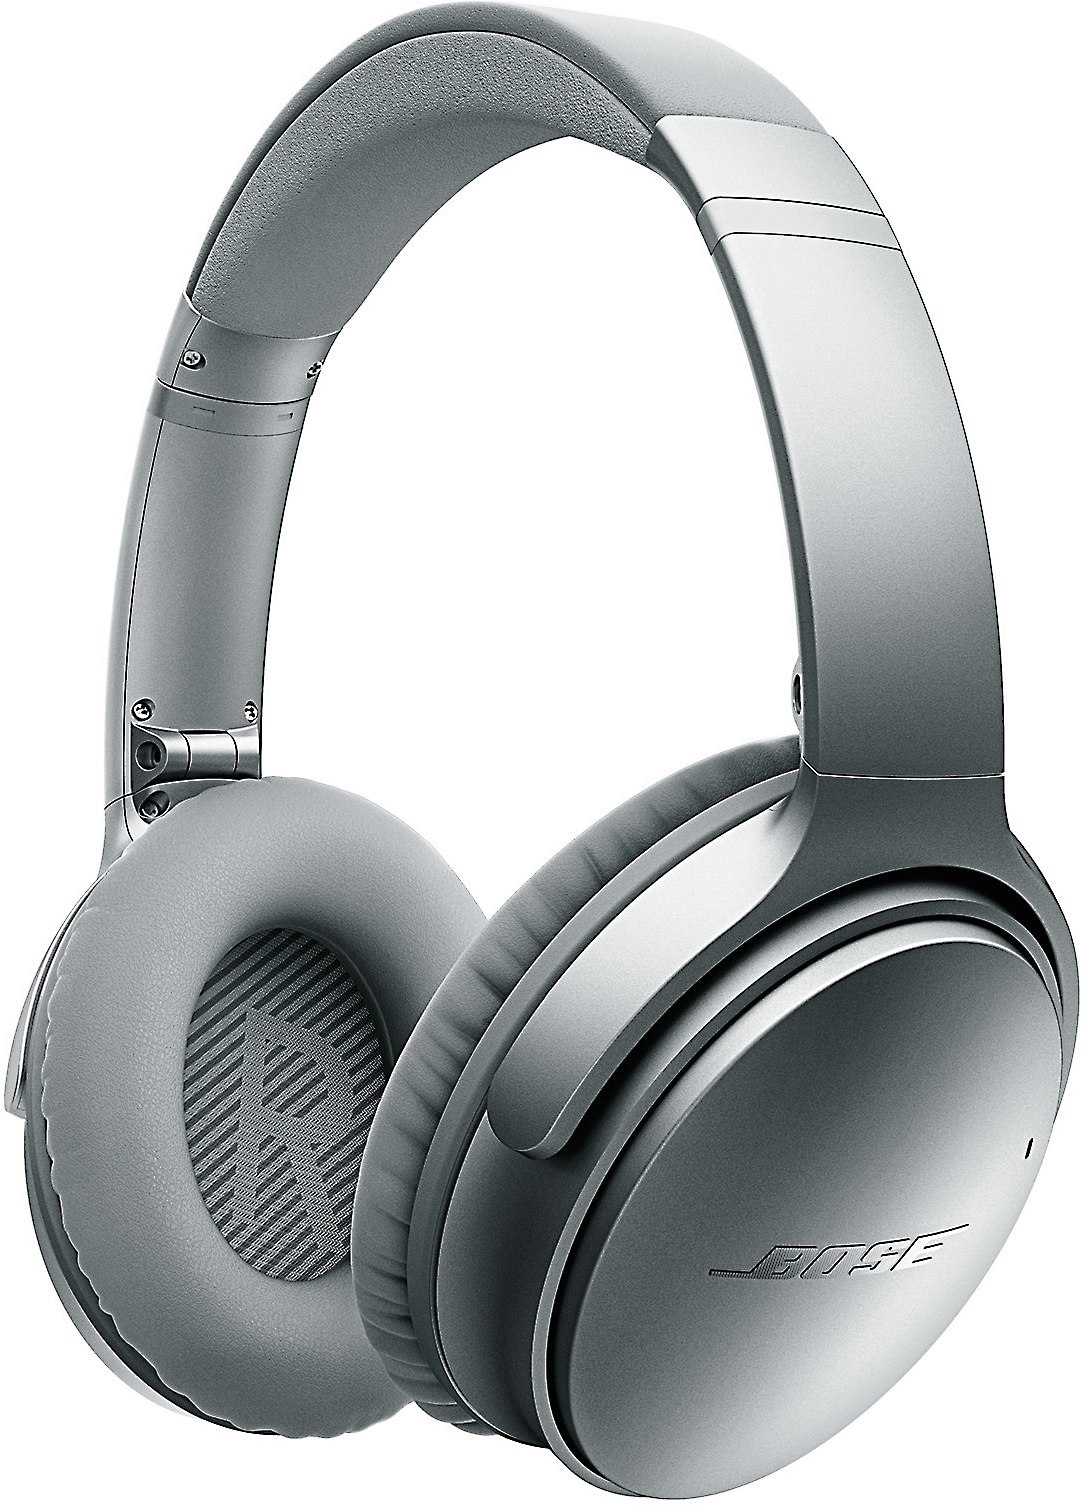 e08a7118bd5 Bose® QuietComfort® 35 (Series I) Acoustic Noise Cancelling® wireless  headphones (Silver) at Crutchfield Canada